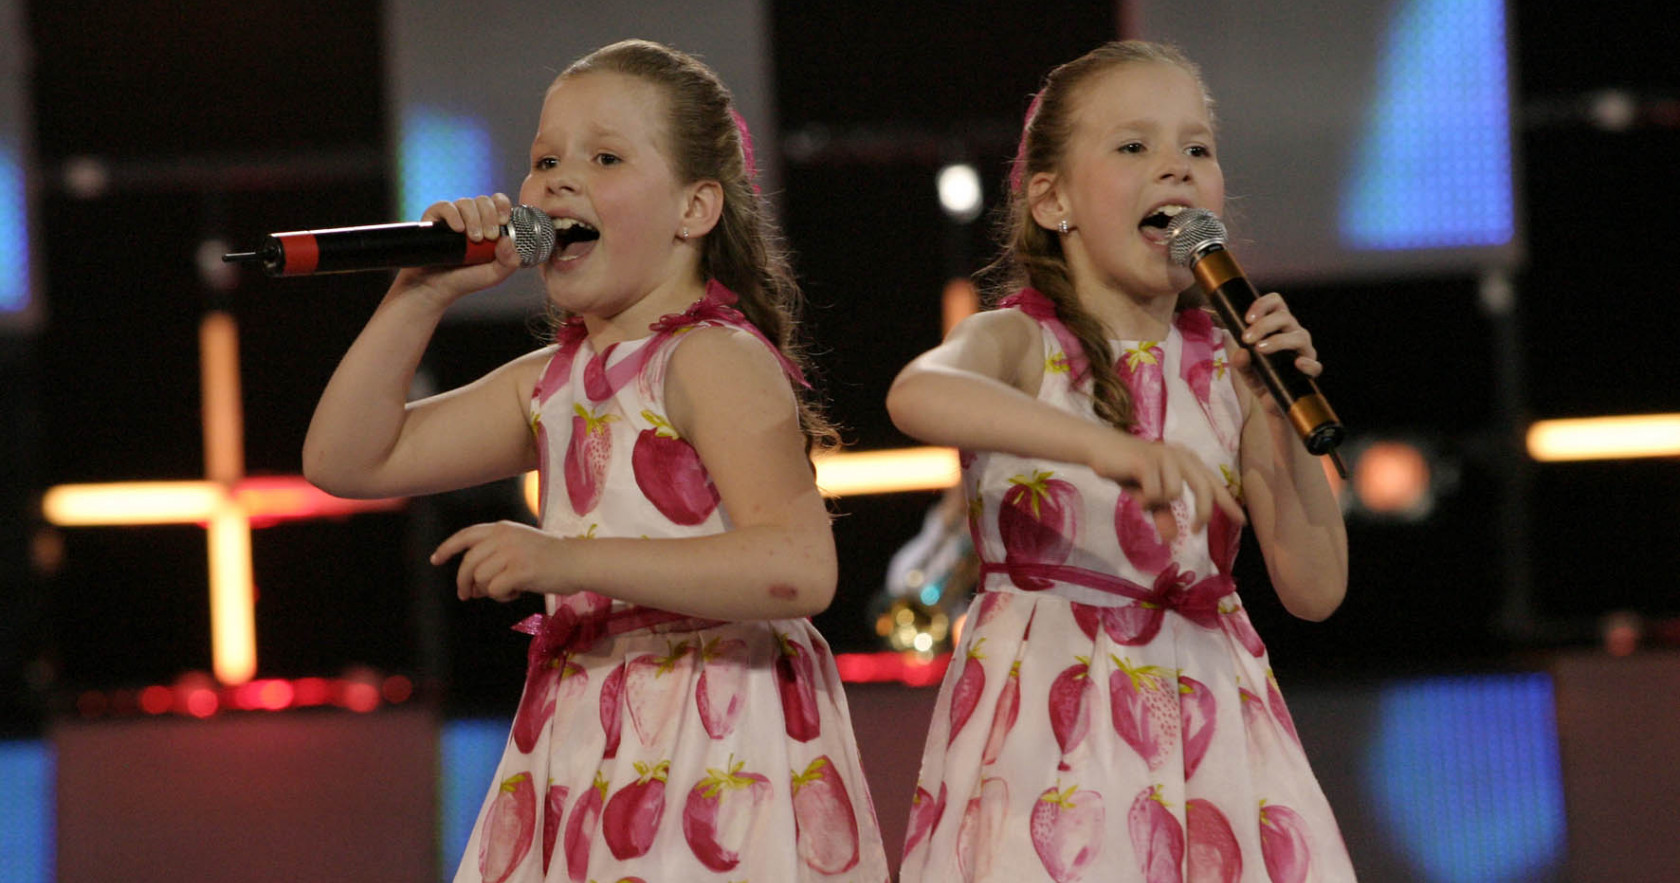 The Russian Tolmachevy Twins won the Junior Eurovision Song Contest in 2006